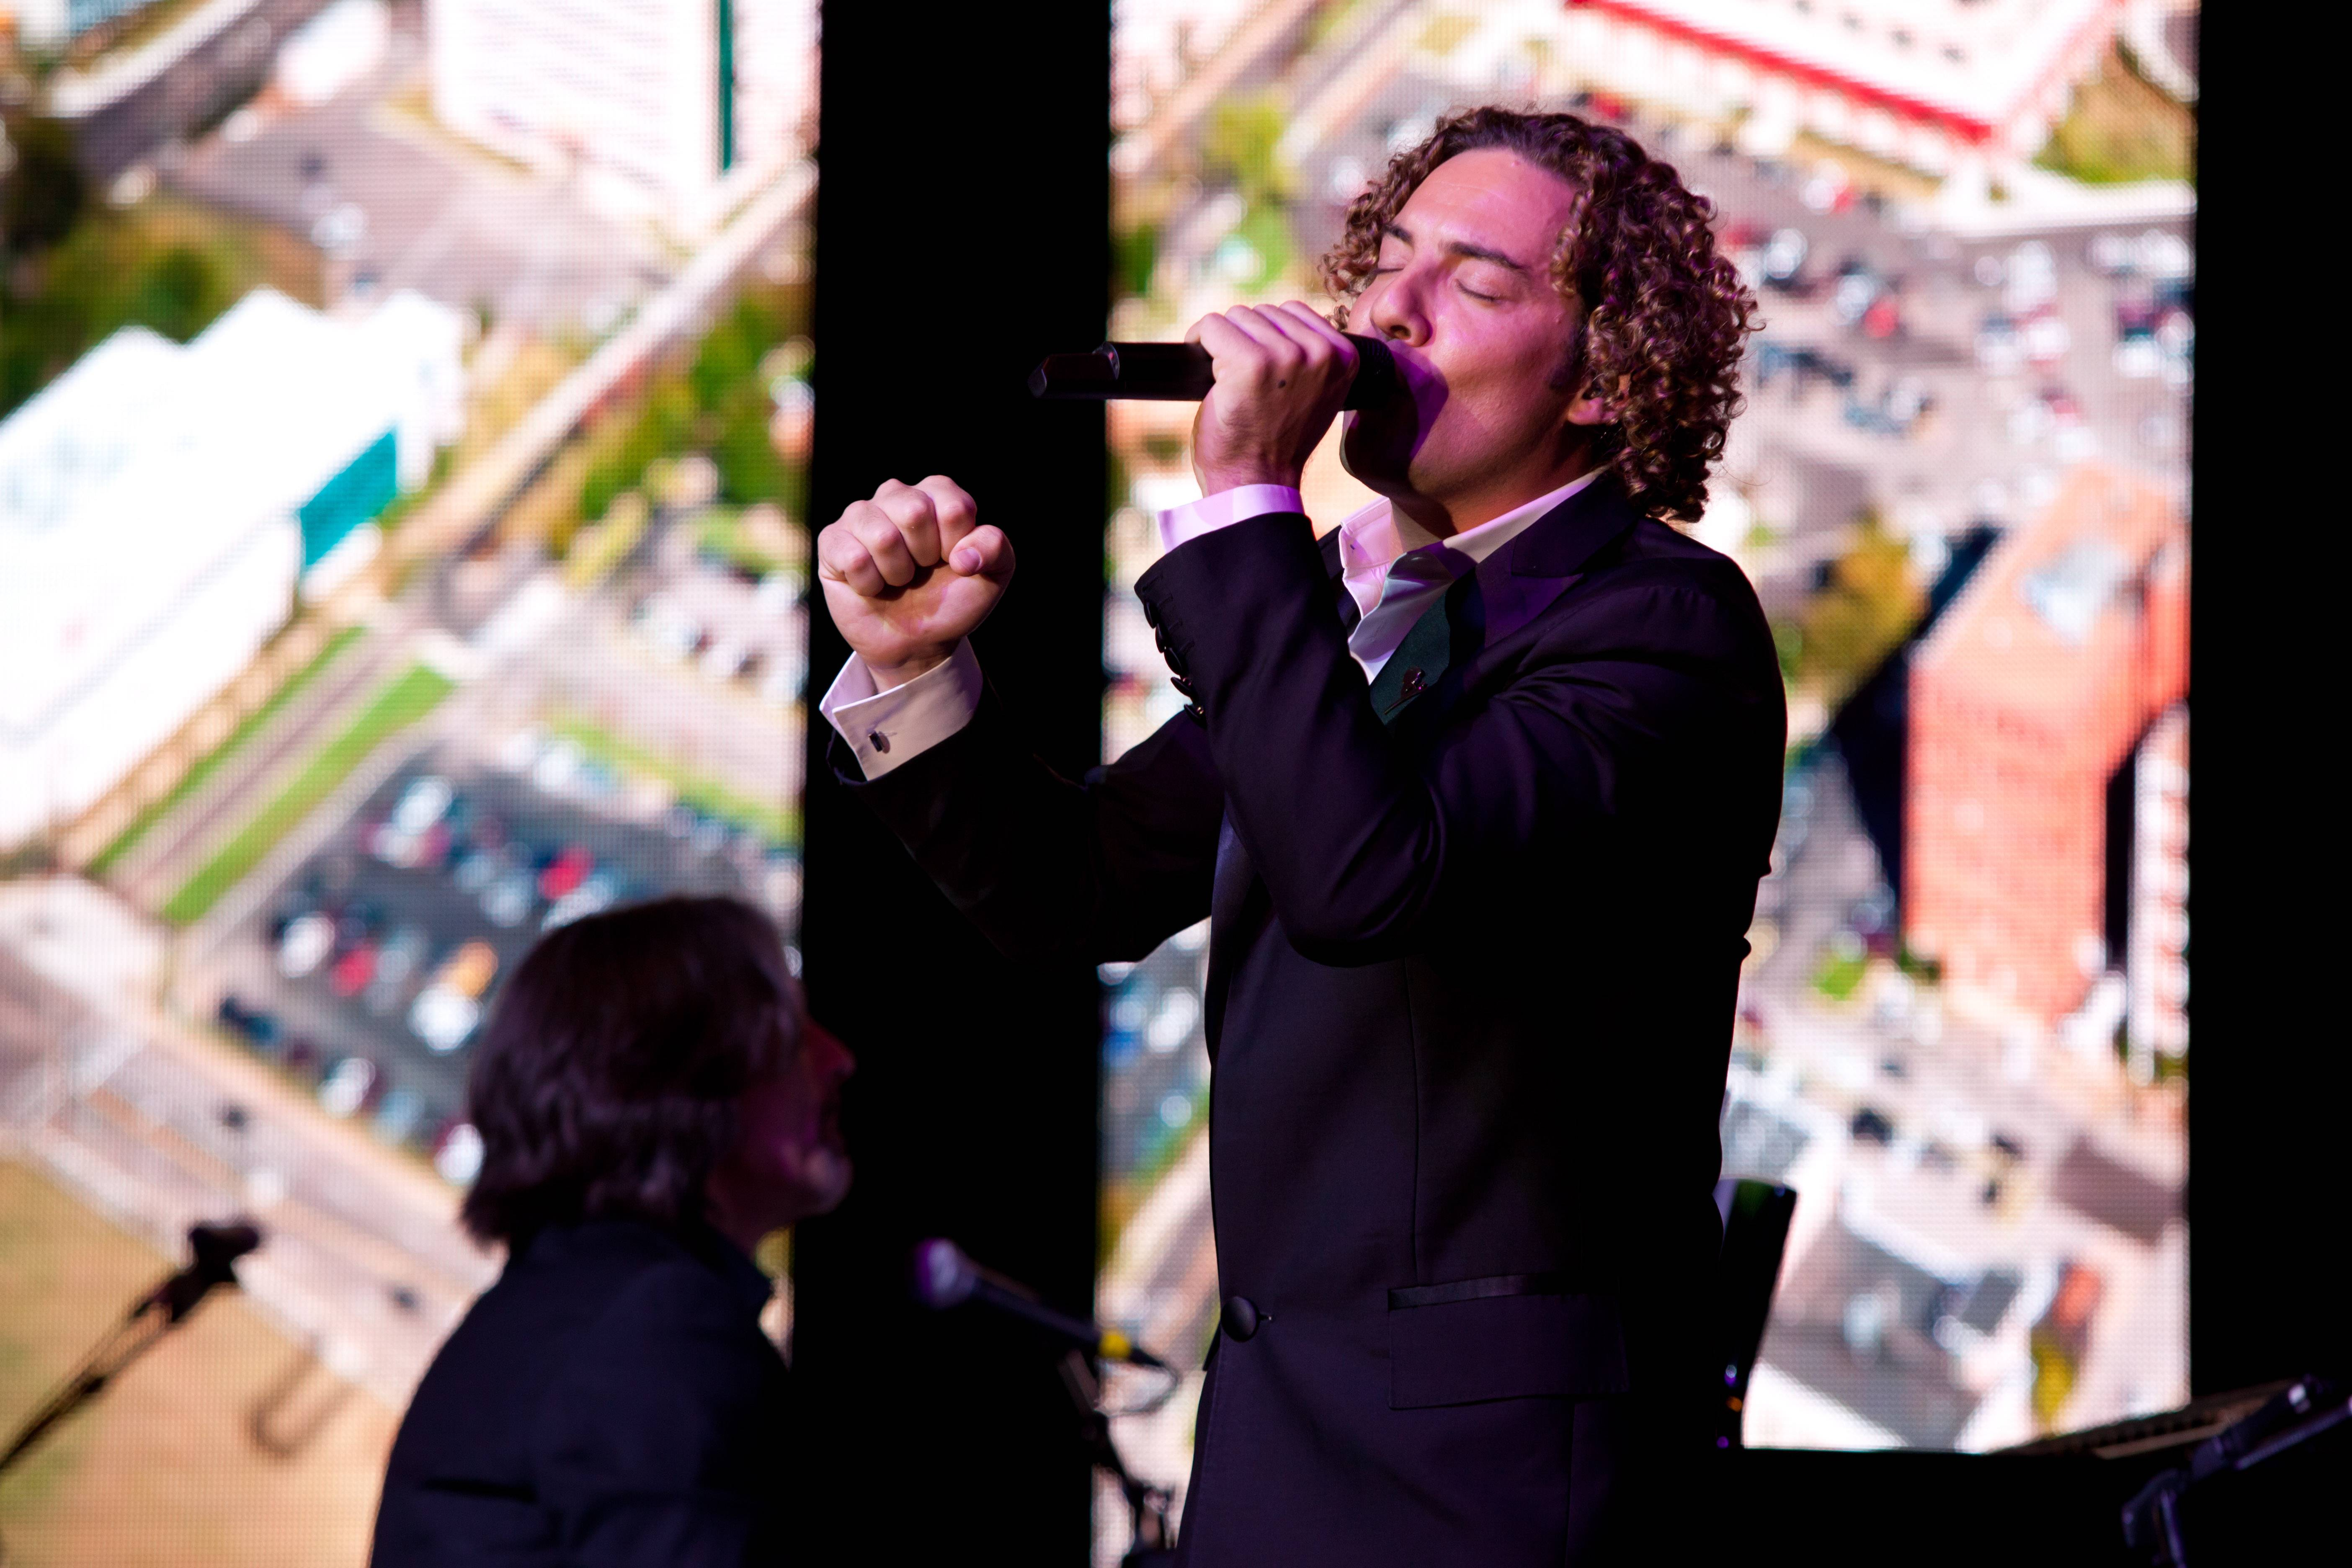 Latin super star David Bisbal performing at the event